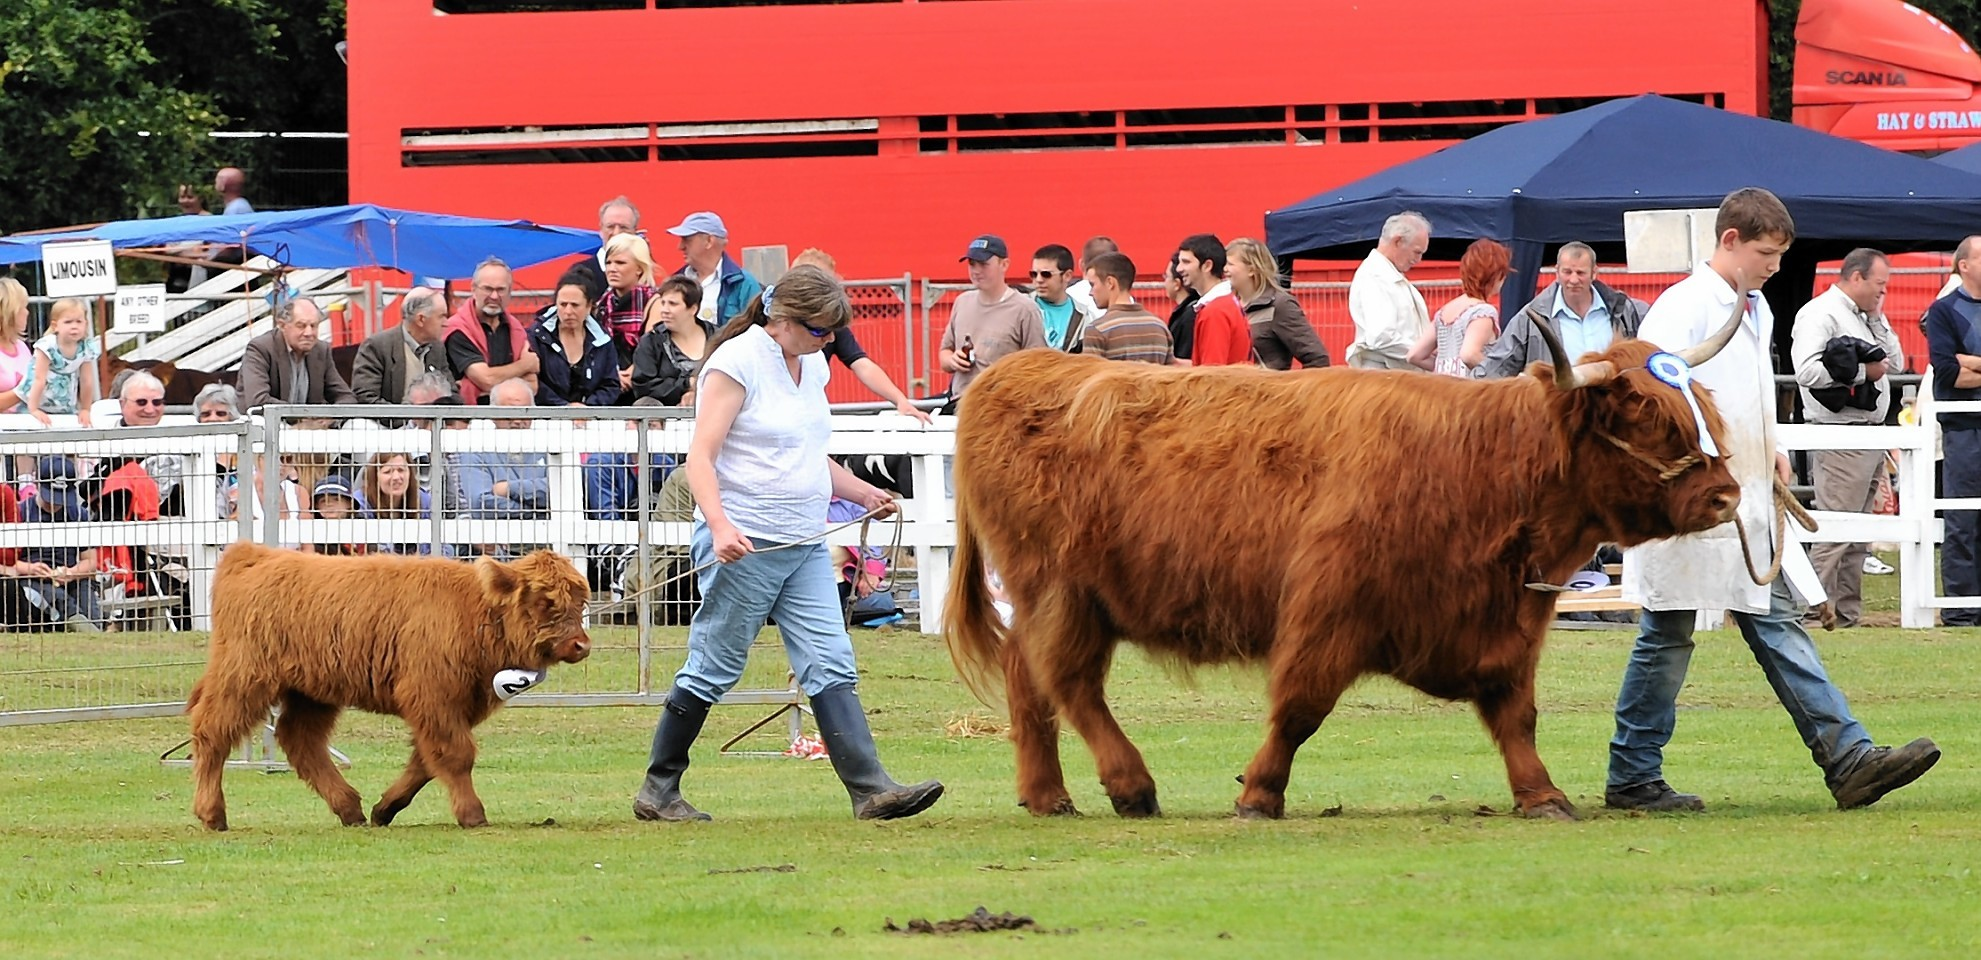 This year marks the 150th anniversary of the Turriff Show